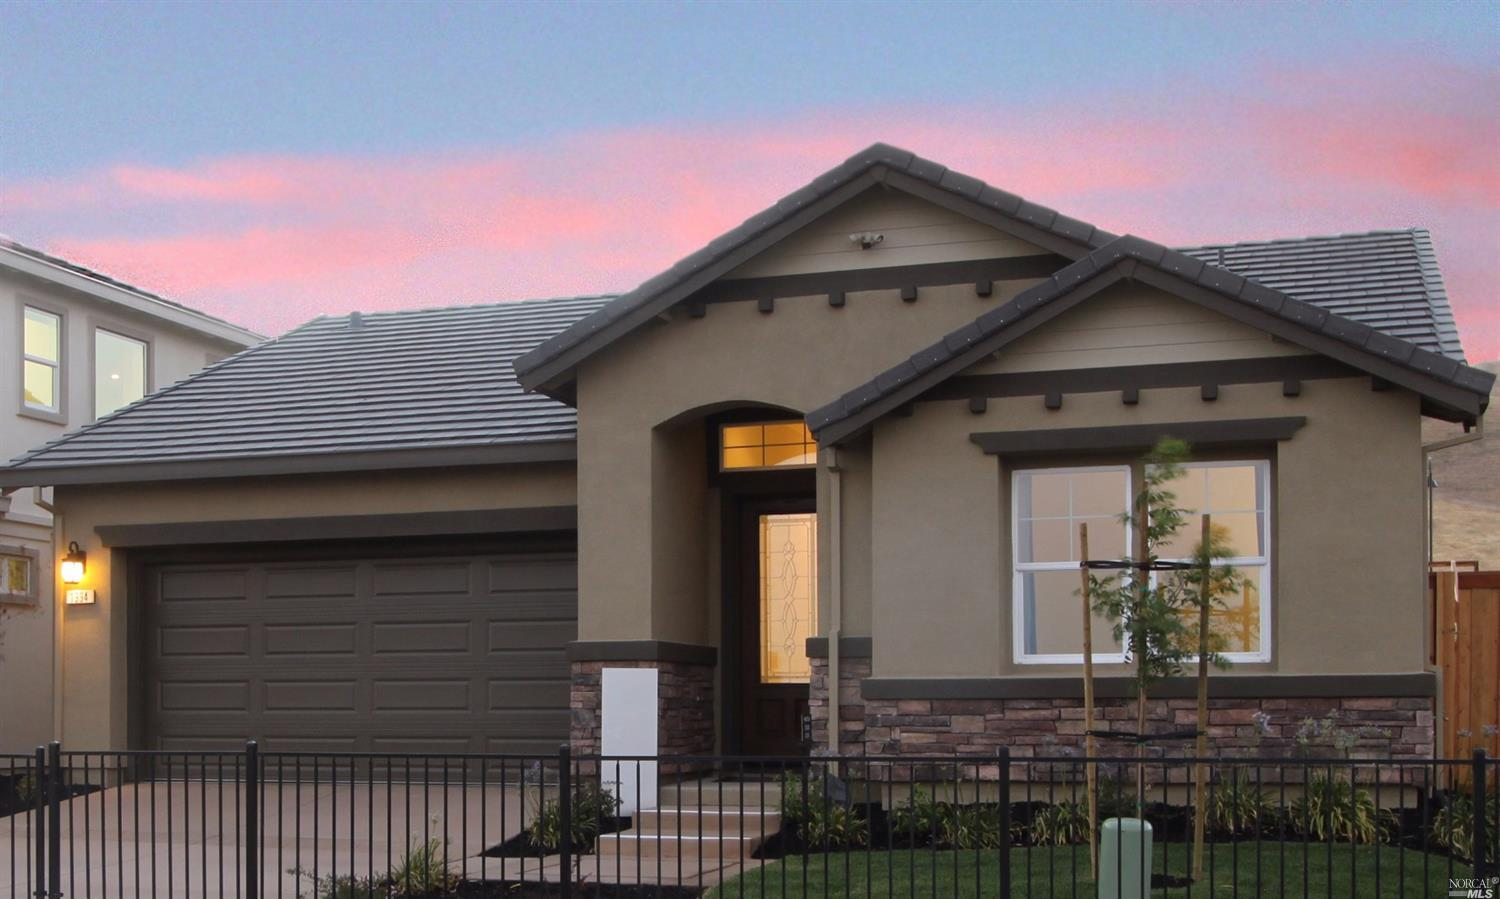 Envision yourself in this masterfully designed one story home. Rich in detail and luxury amenities,